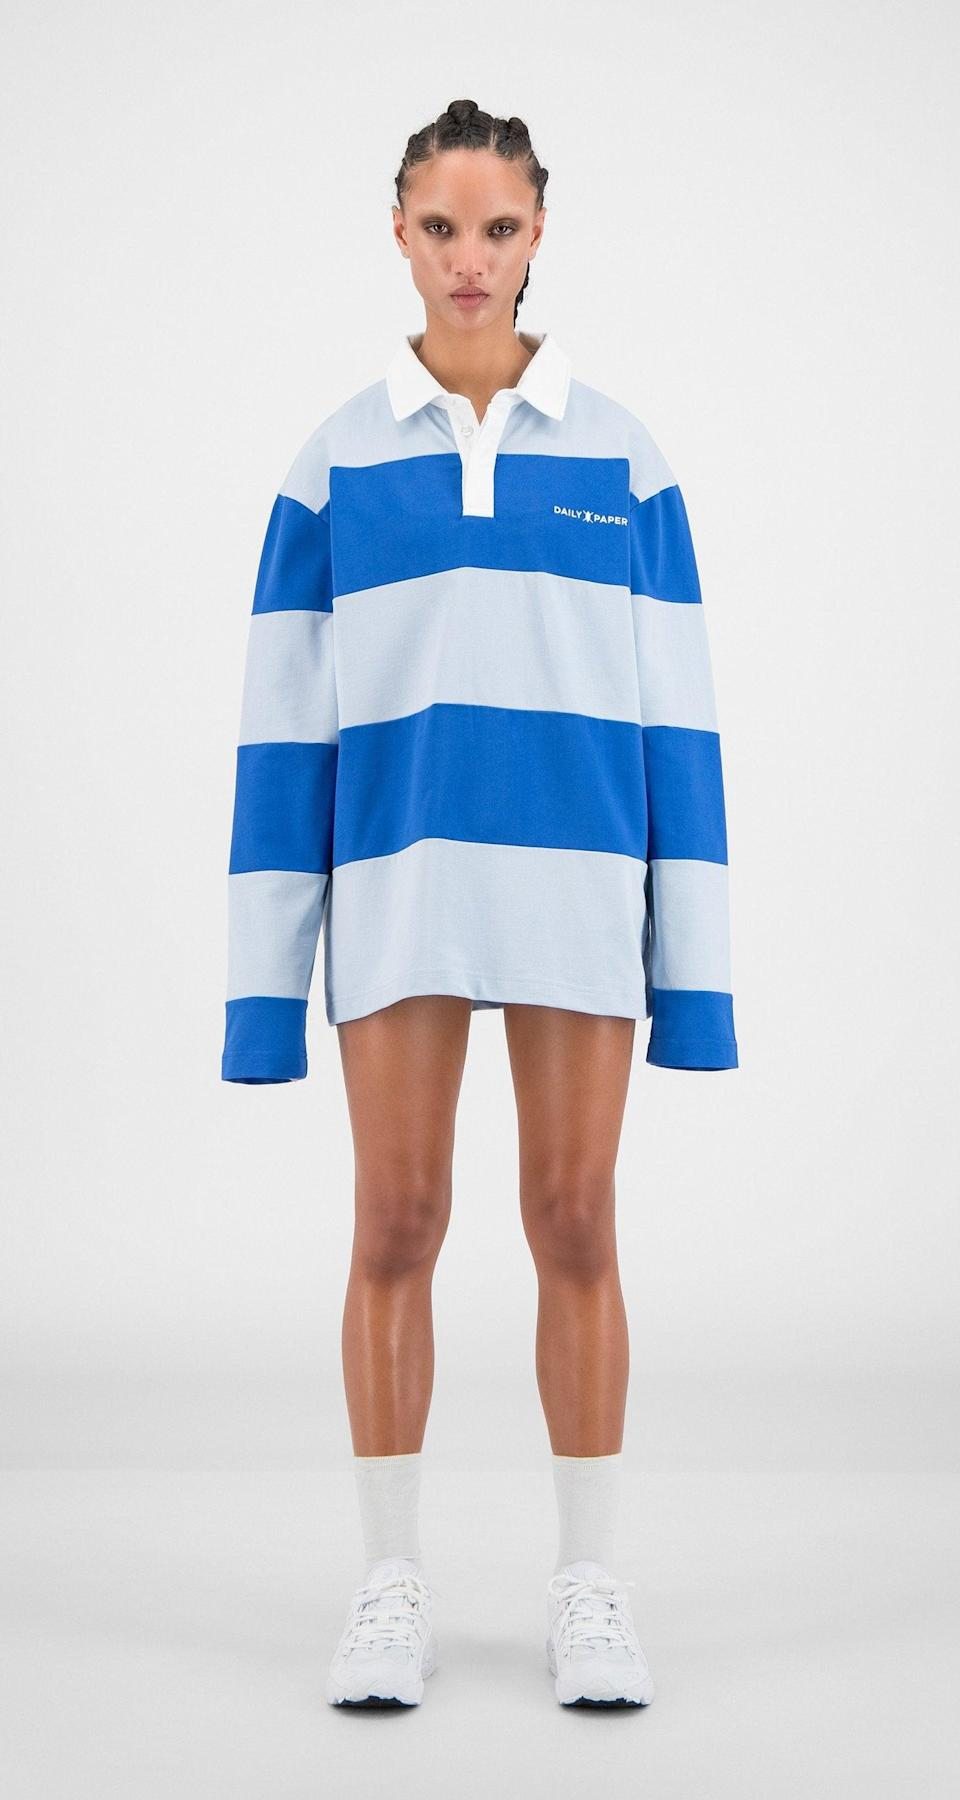 """Who's ready to take up rugby with us just so that we have an excuse to wear this shirt? <br> <br> <strong>Daily Paper</strong> Olympian Blue Striped Apolo Long-Sleeve, $, available at <a href=""""https://go.skimresources.com/?id=30283X879131&url=https%3A%2F%2Fwww.dailypaperclothing.com%2Fcollections%2Fwomen-all%2Fproducts%2Folympian-blue-striped-apolo-long-sleeve%3Fvariant%3D31248399106182"""" rel=""""nofollow noopener"""" target=""""_blank"""" data-ylk=""""slk:Daily Paper"""" class=""""link rapid-noclick-resp"""">Daily Paper</a>"""